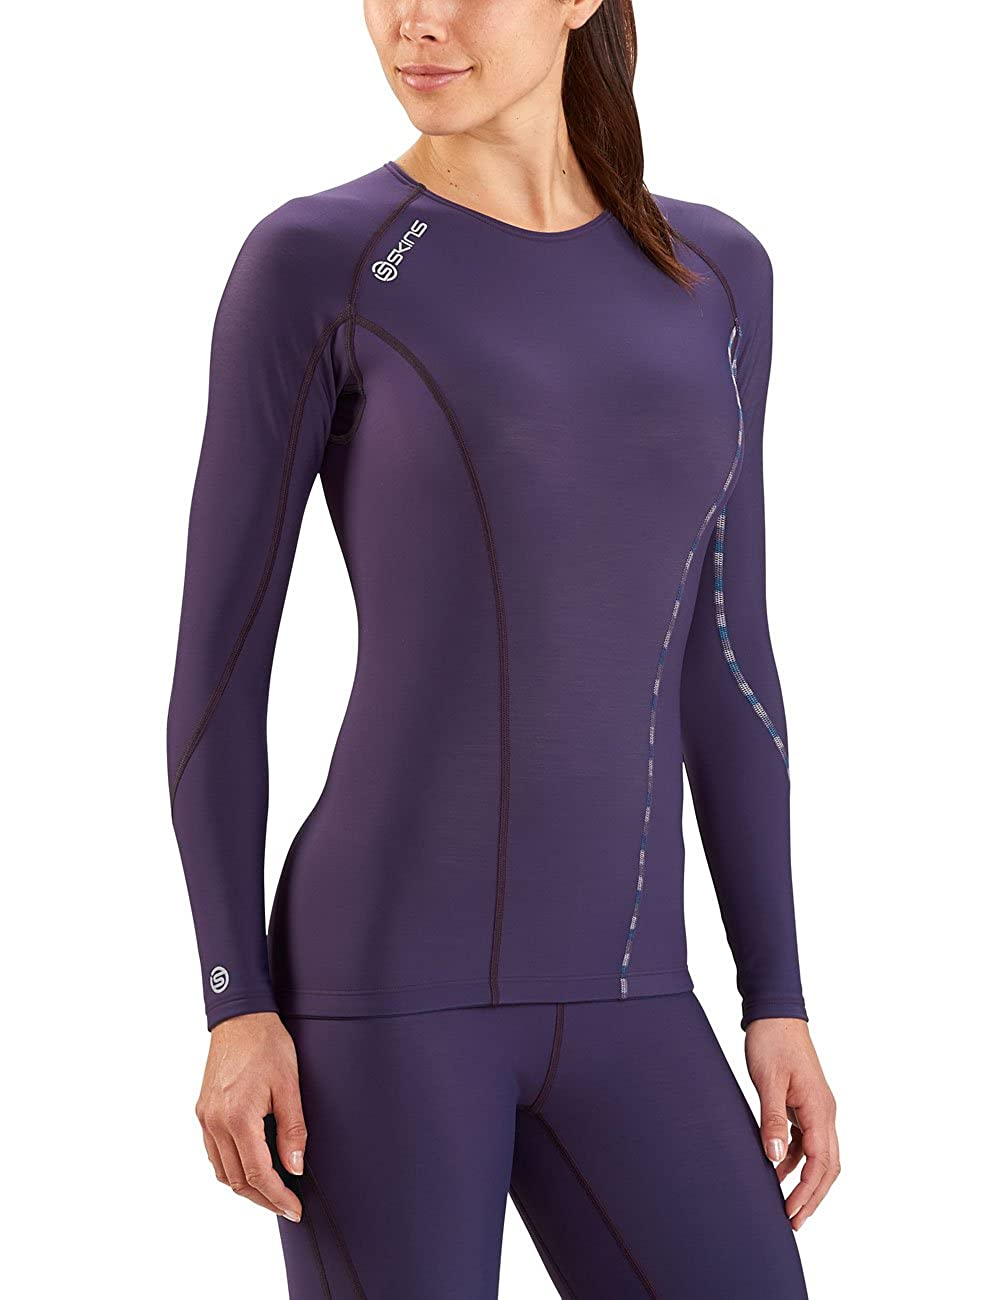 Skins Mens DNAmic Thermal Long Sleeve Compression Top